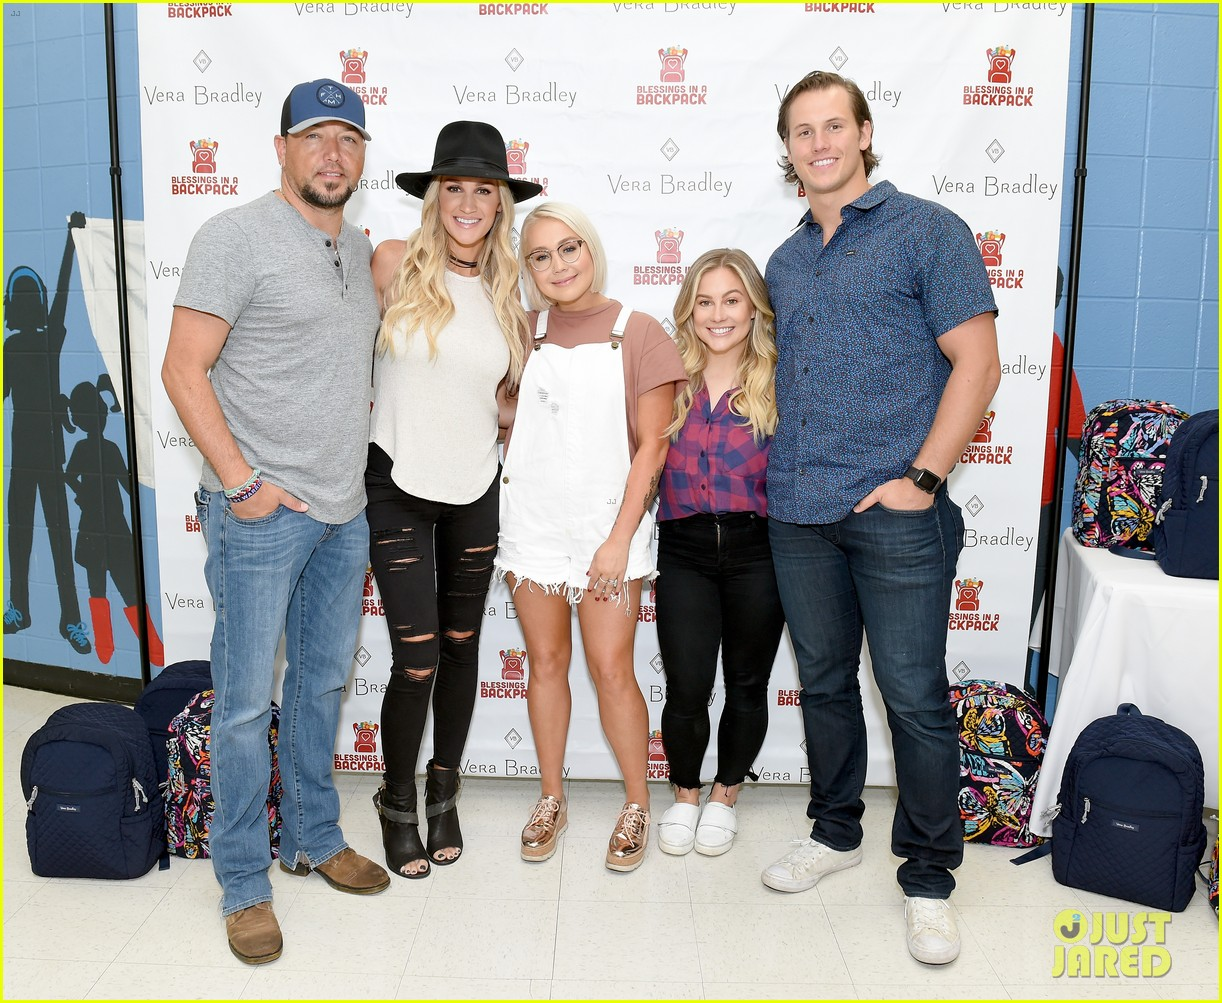 jason aldean and brittany host vera bradley x blessings in a backpack event 024135188